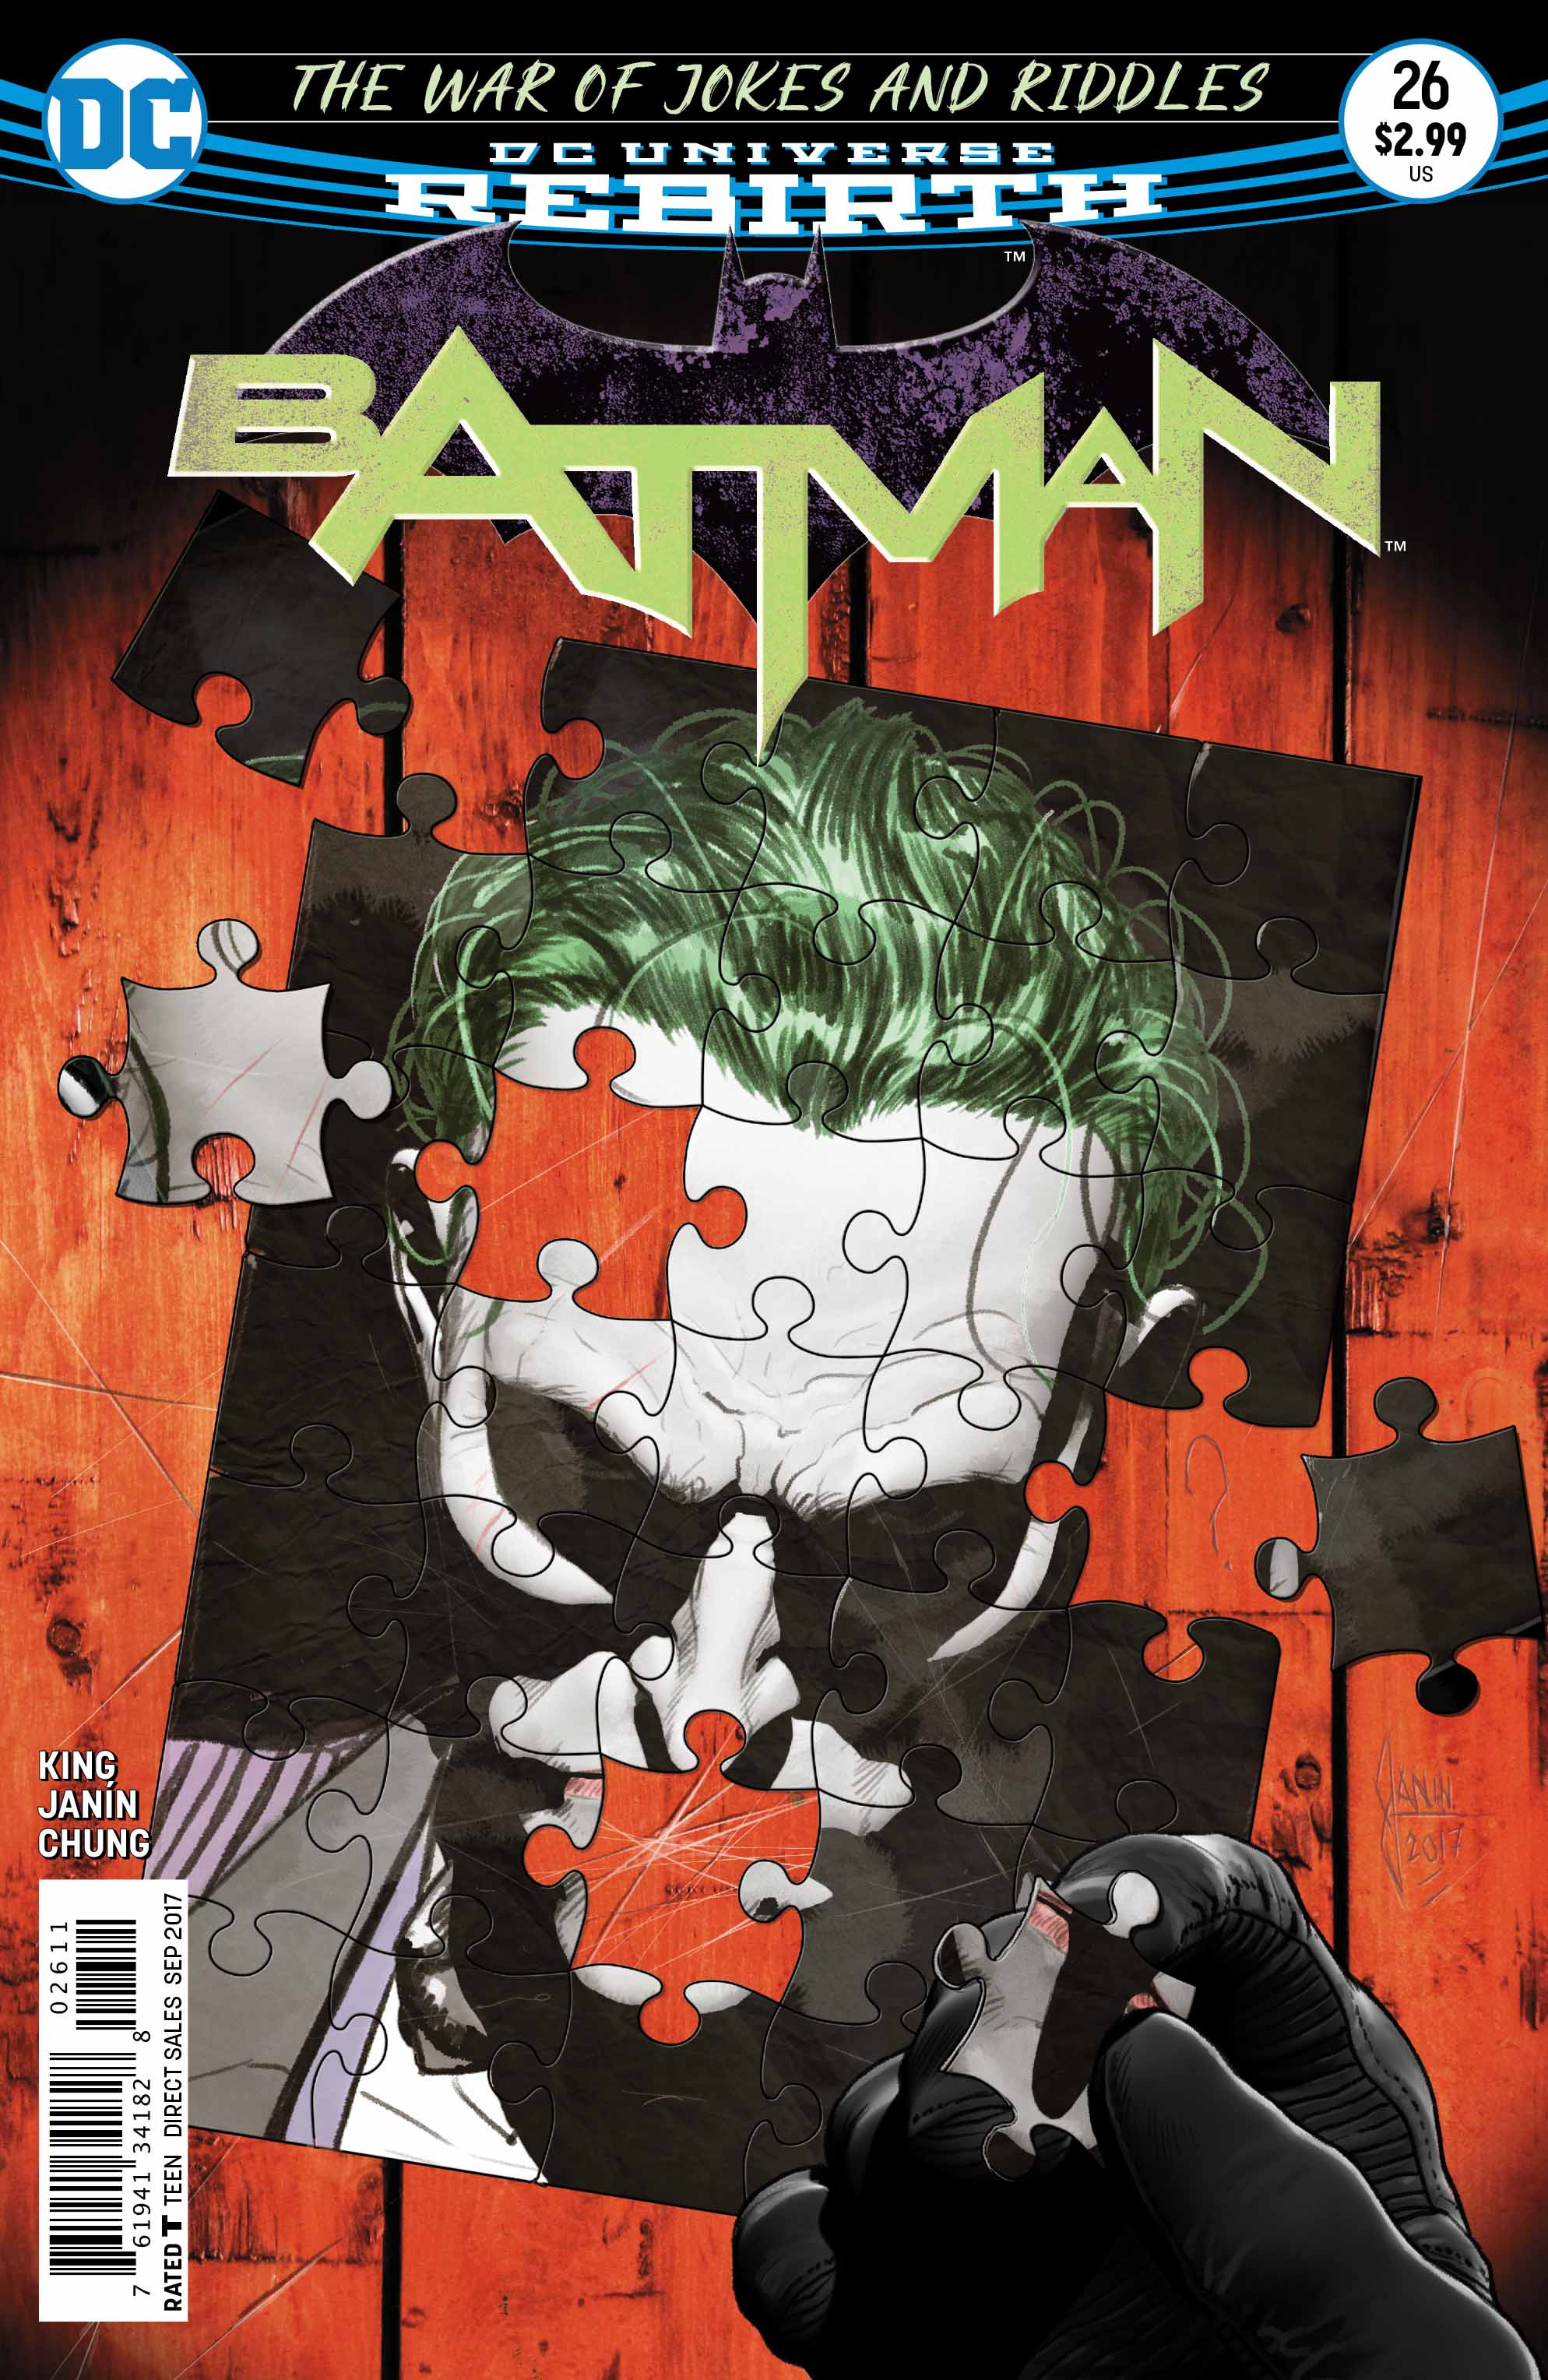 Batman #26 Review